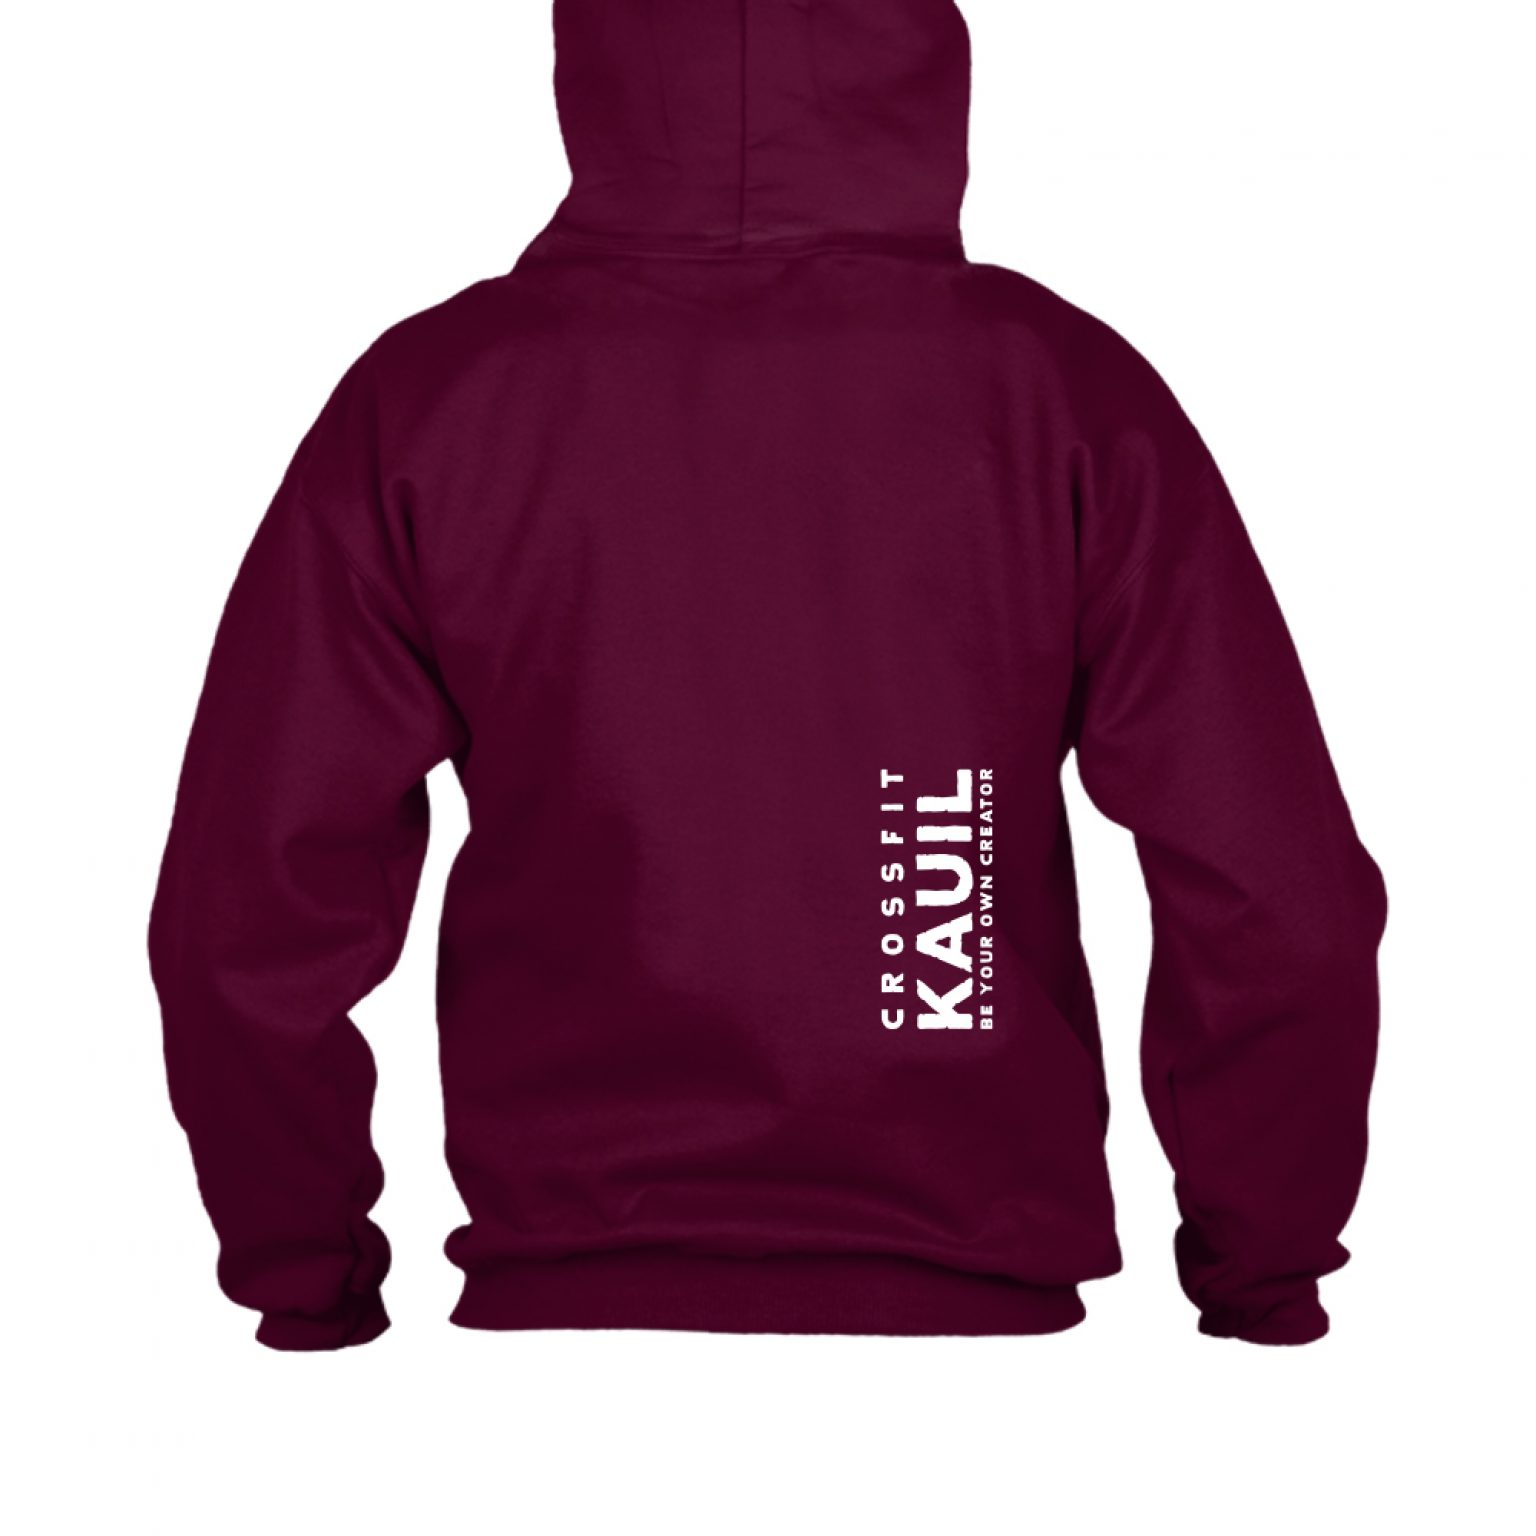 HerrenHoody Burgundy1 weiss back